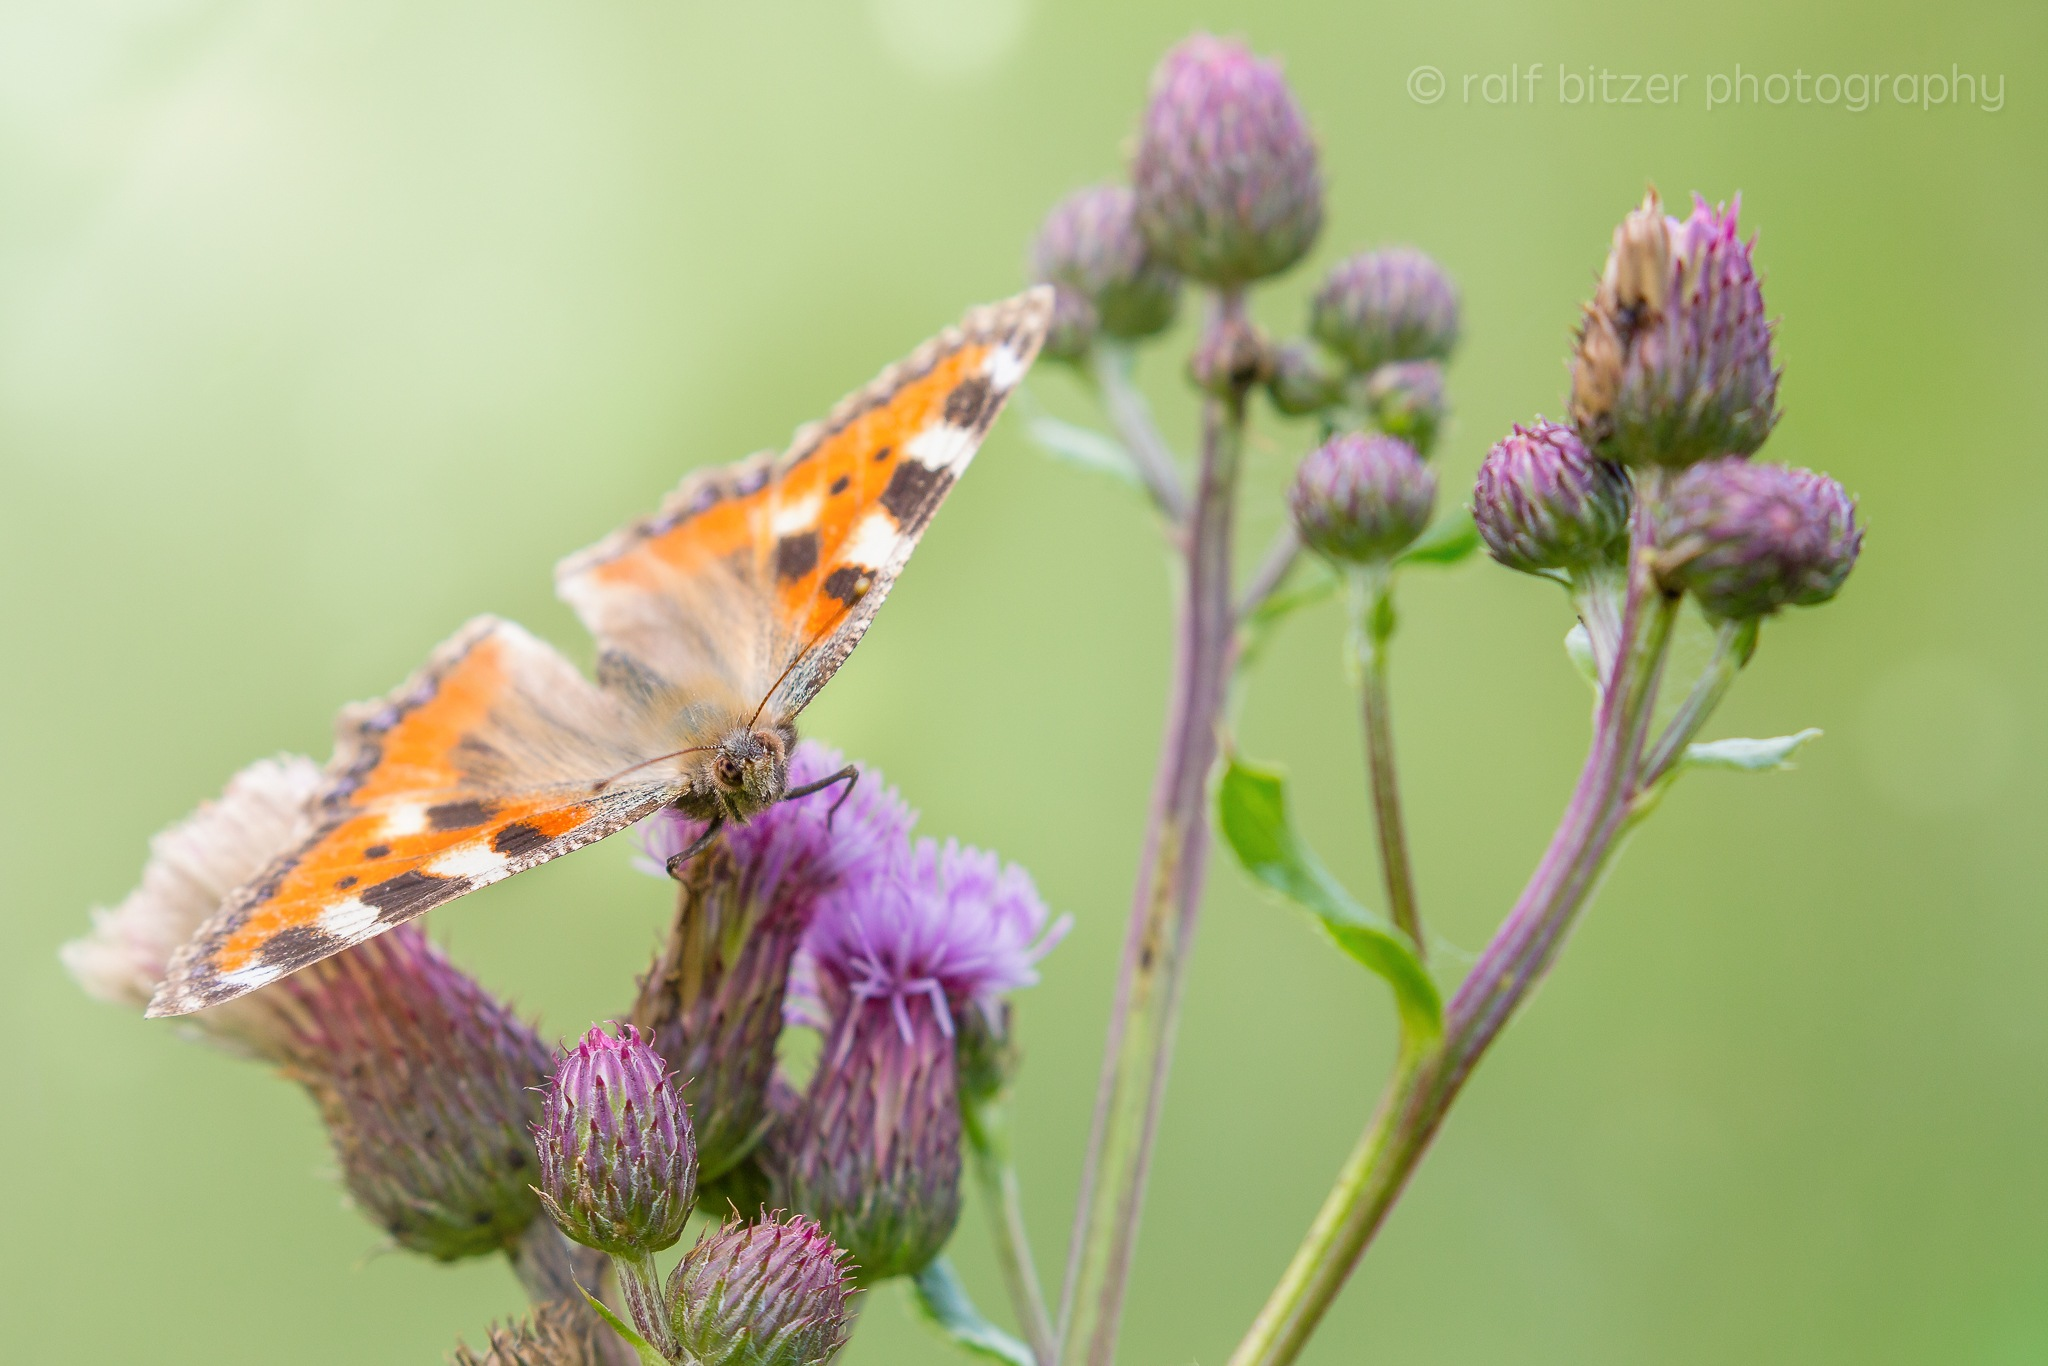 Butterfly by Ralf Bitzer